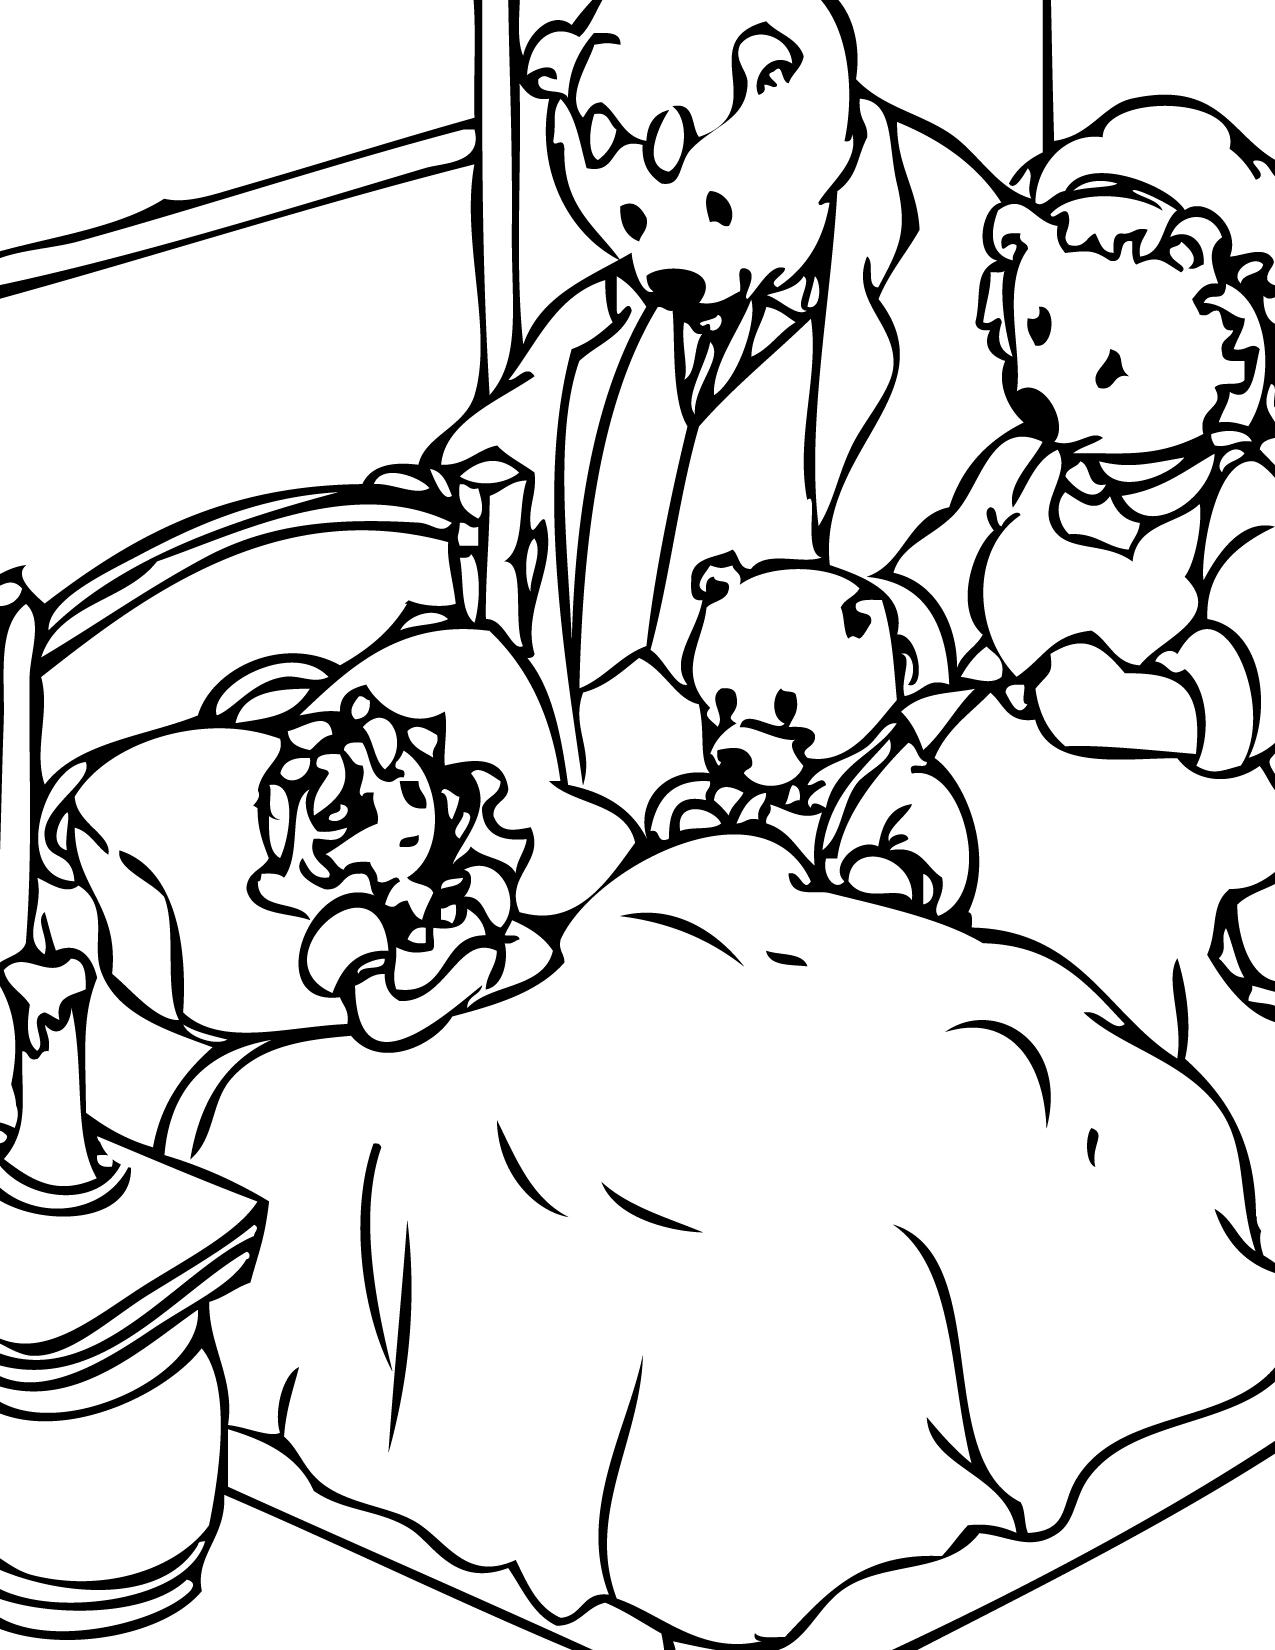 the three bears coloring pages - photo#4